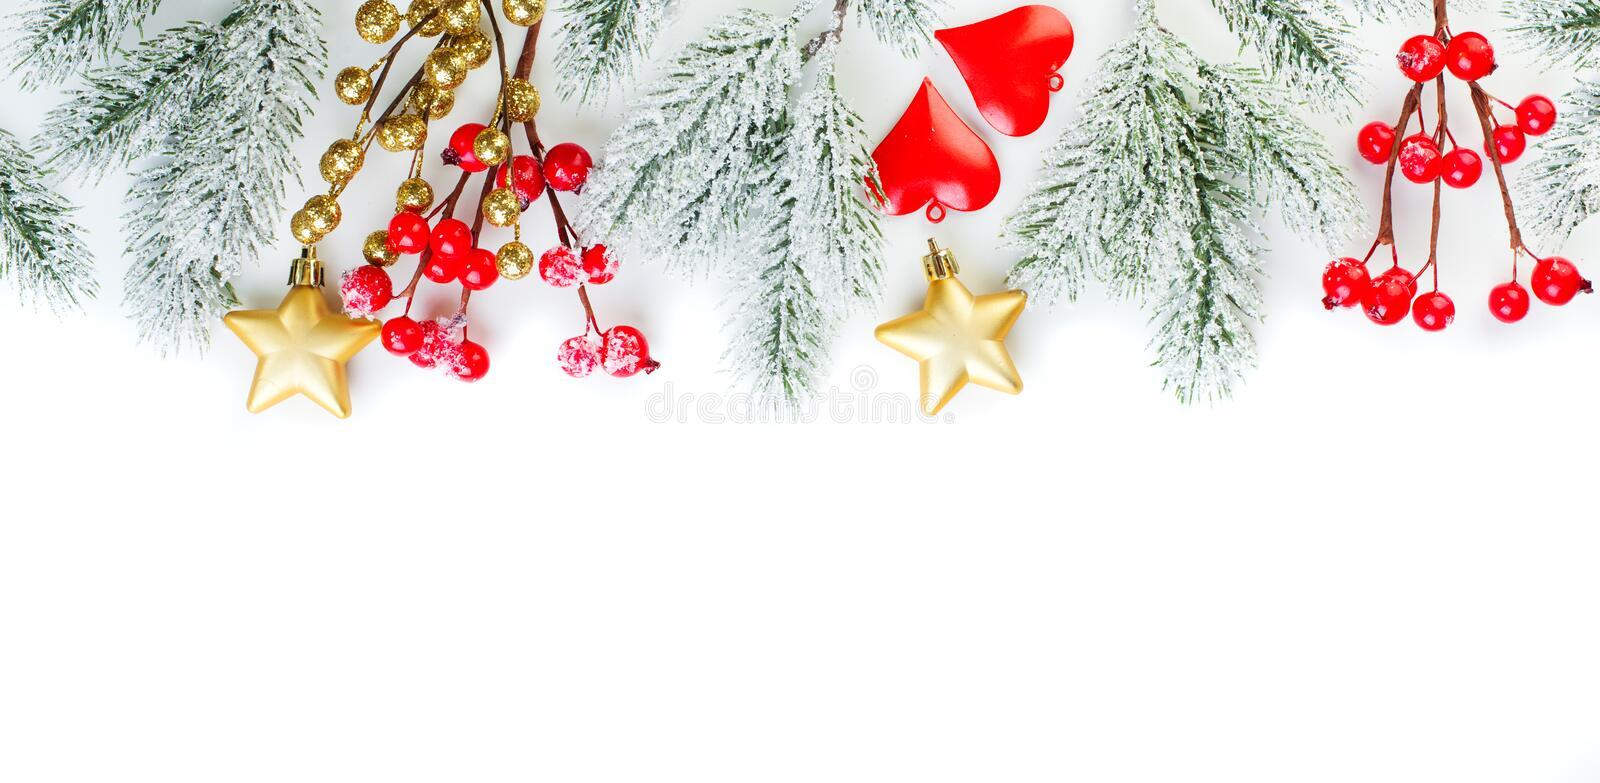 Christmas decor border. Green Xmas fir branch, gold stars, red holly berries and glass baubles isolated on white background.  royalty free stock photos